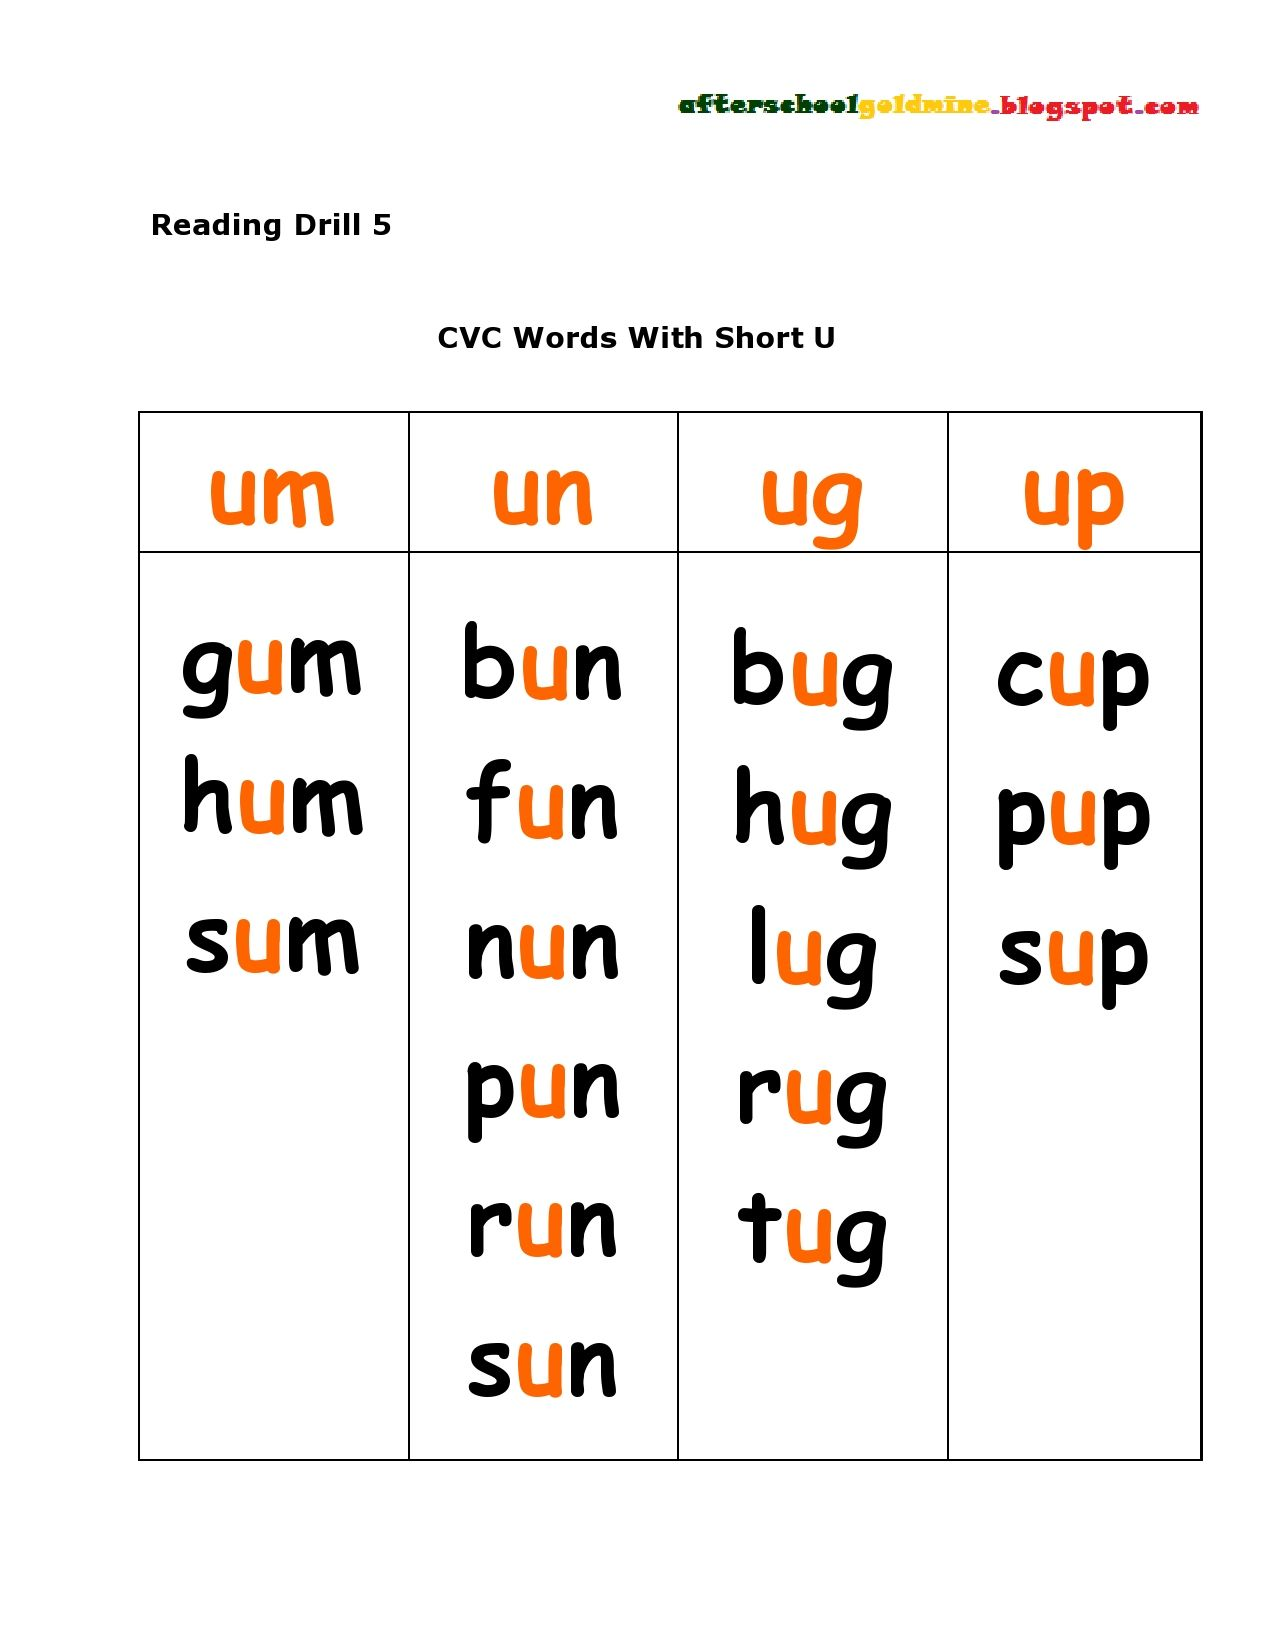 Worksheet Short U Words For Kids worksheet short u words for kids mikyu free 1000 images about vowels on pinterest